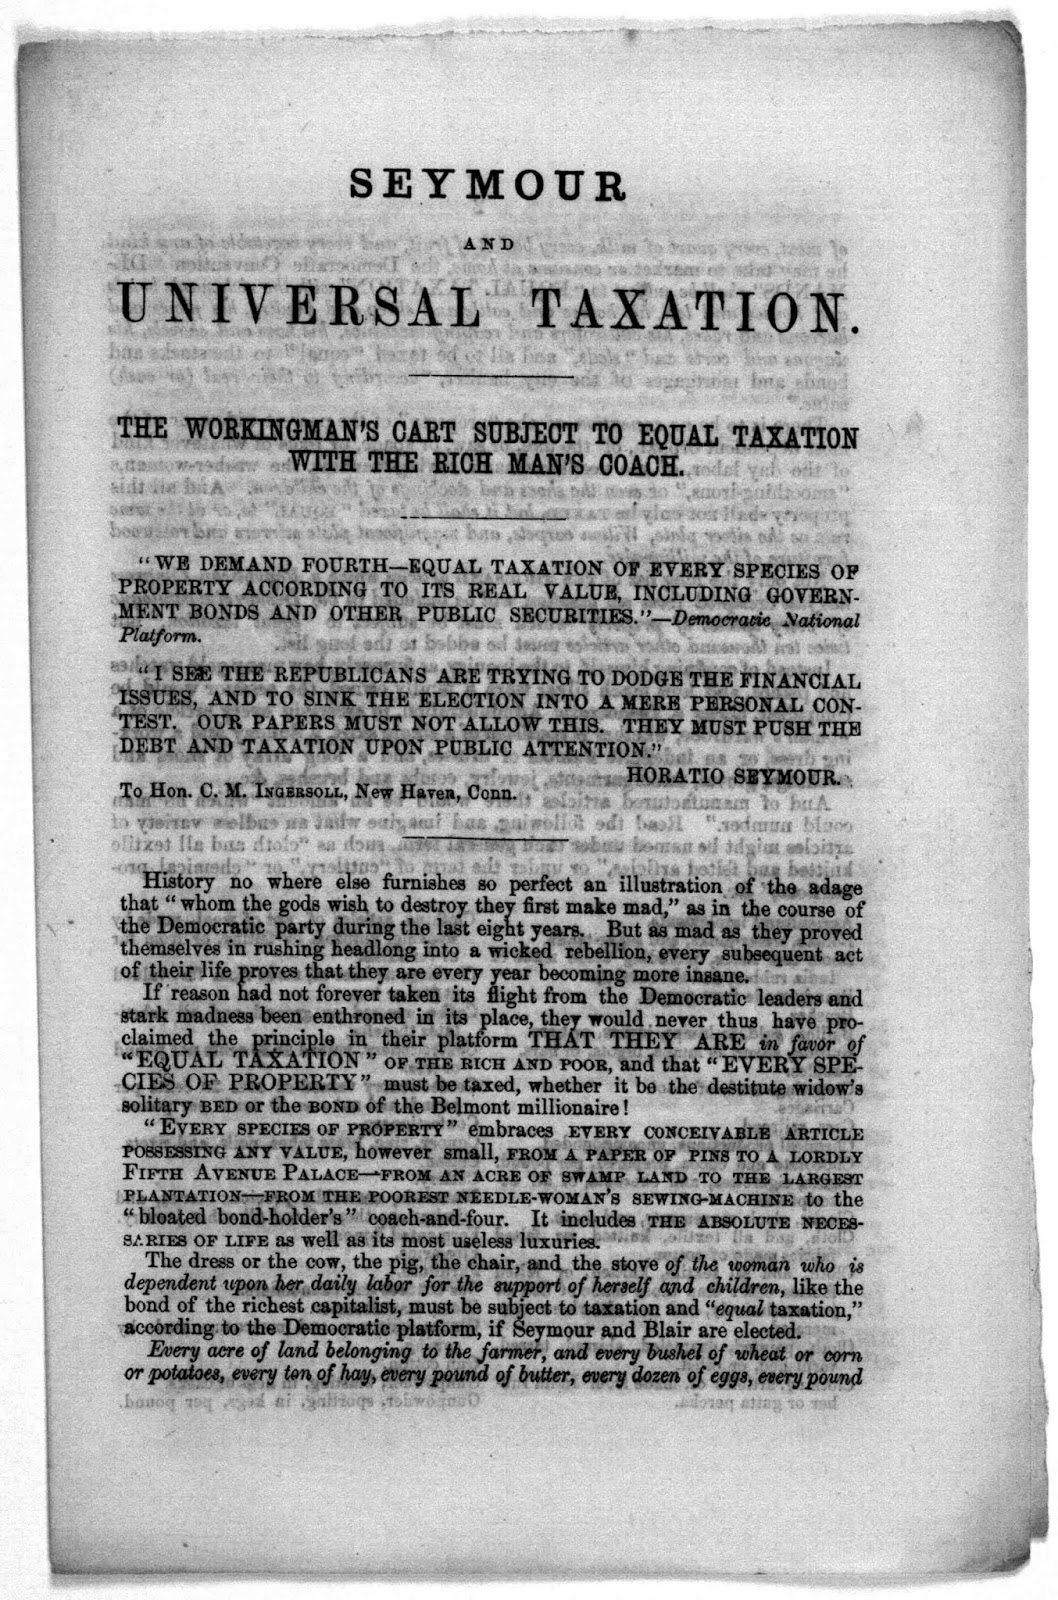 the election of 1868 horatio seymour and universal taxation